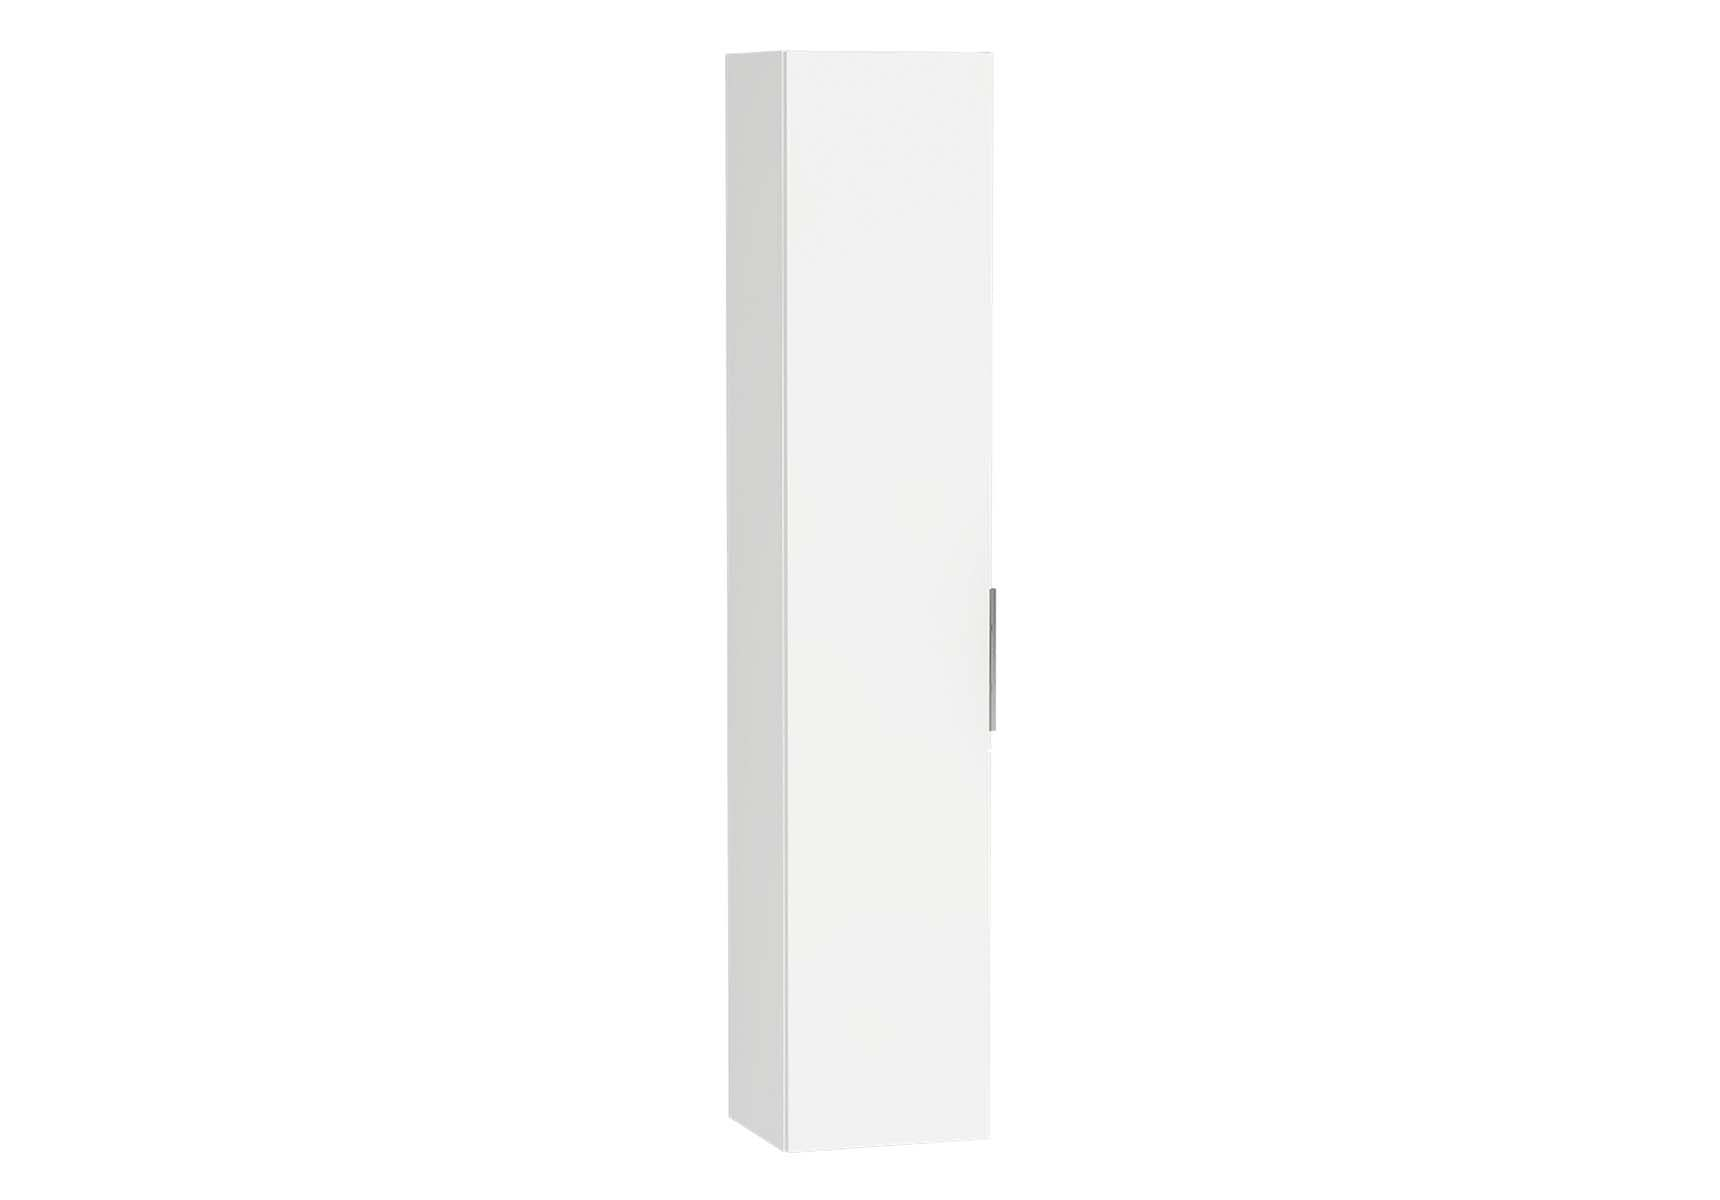 Central Tall Unit, 35 cm, White High Gloss, Left